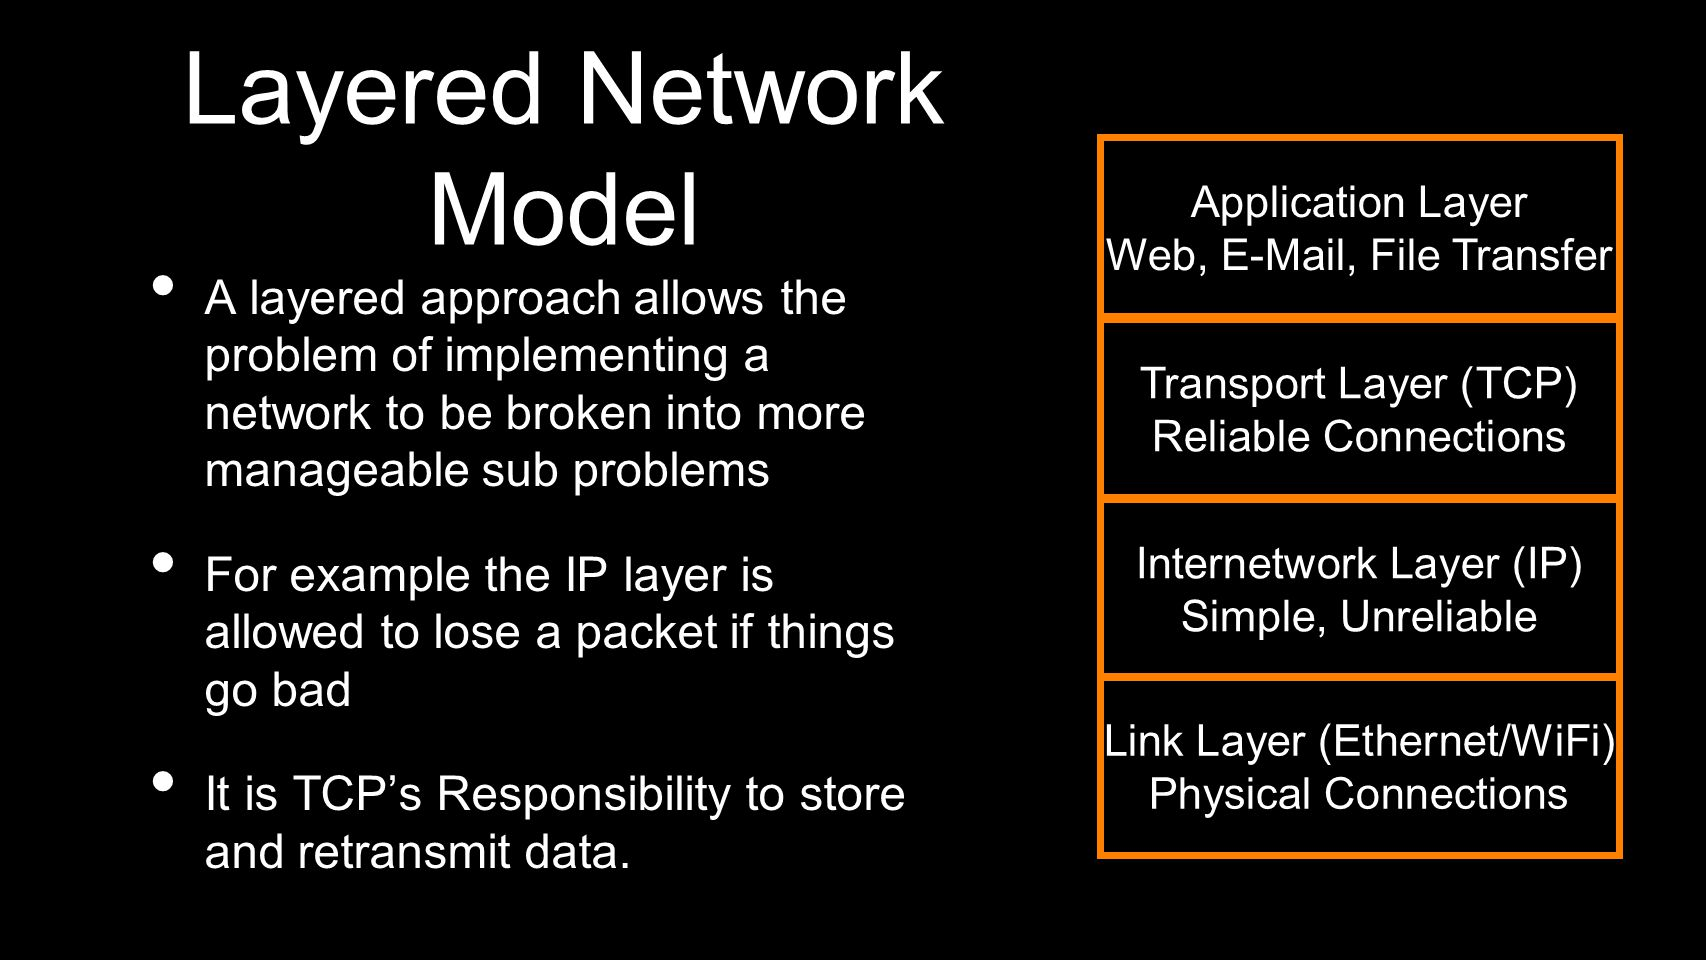 Layered Network Model Application Layer. Web, E-Mail, File Transfer.